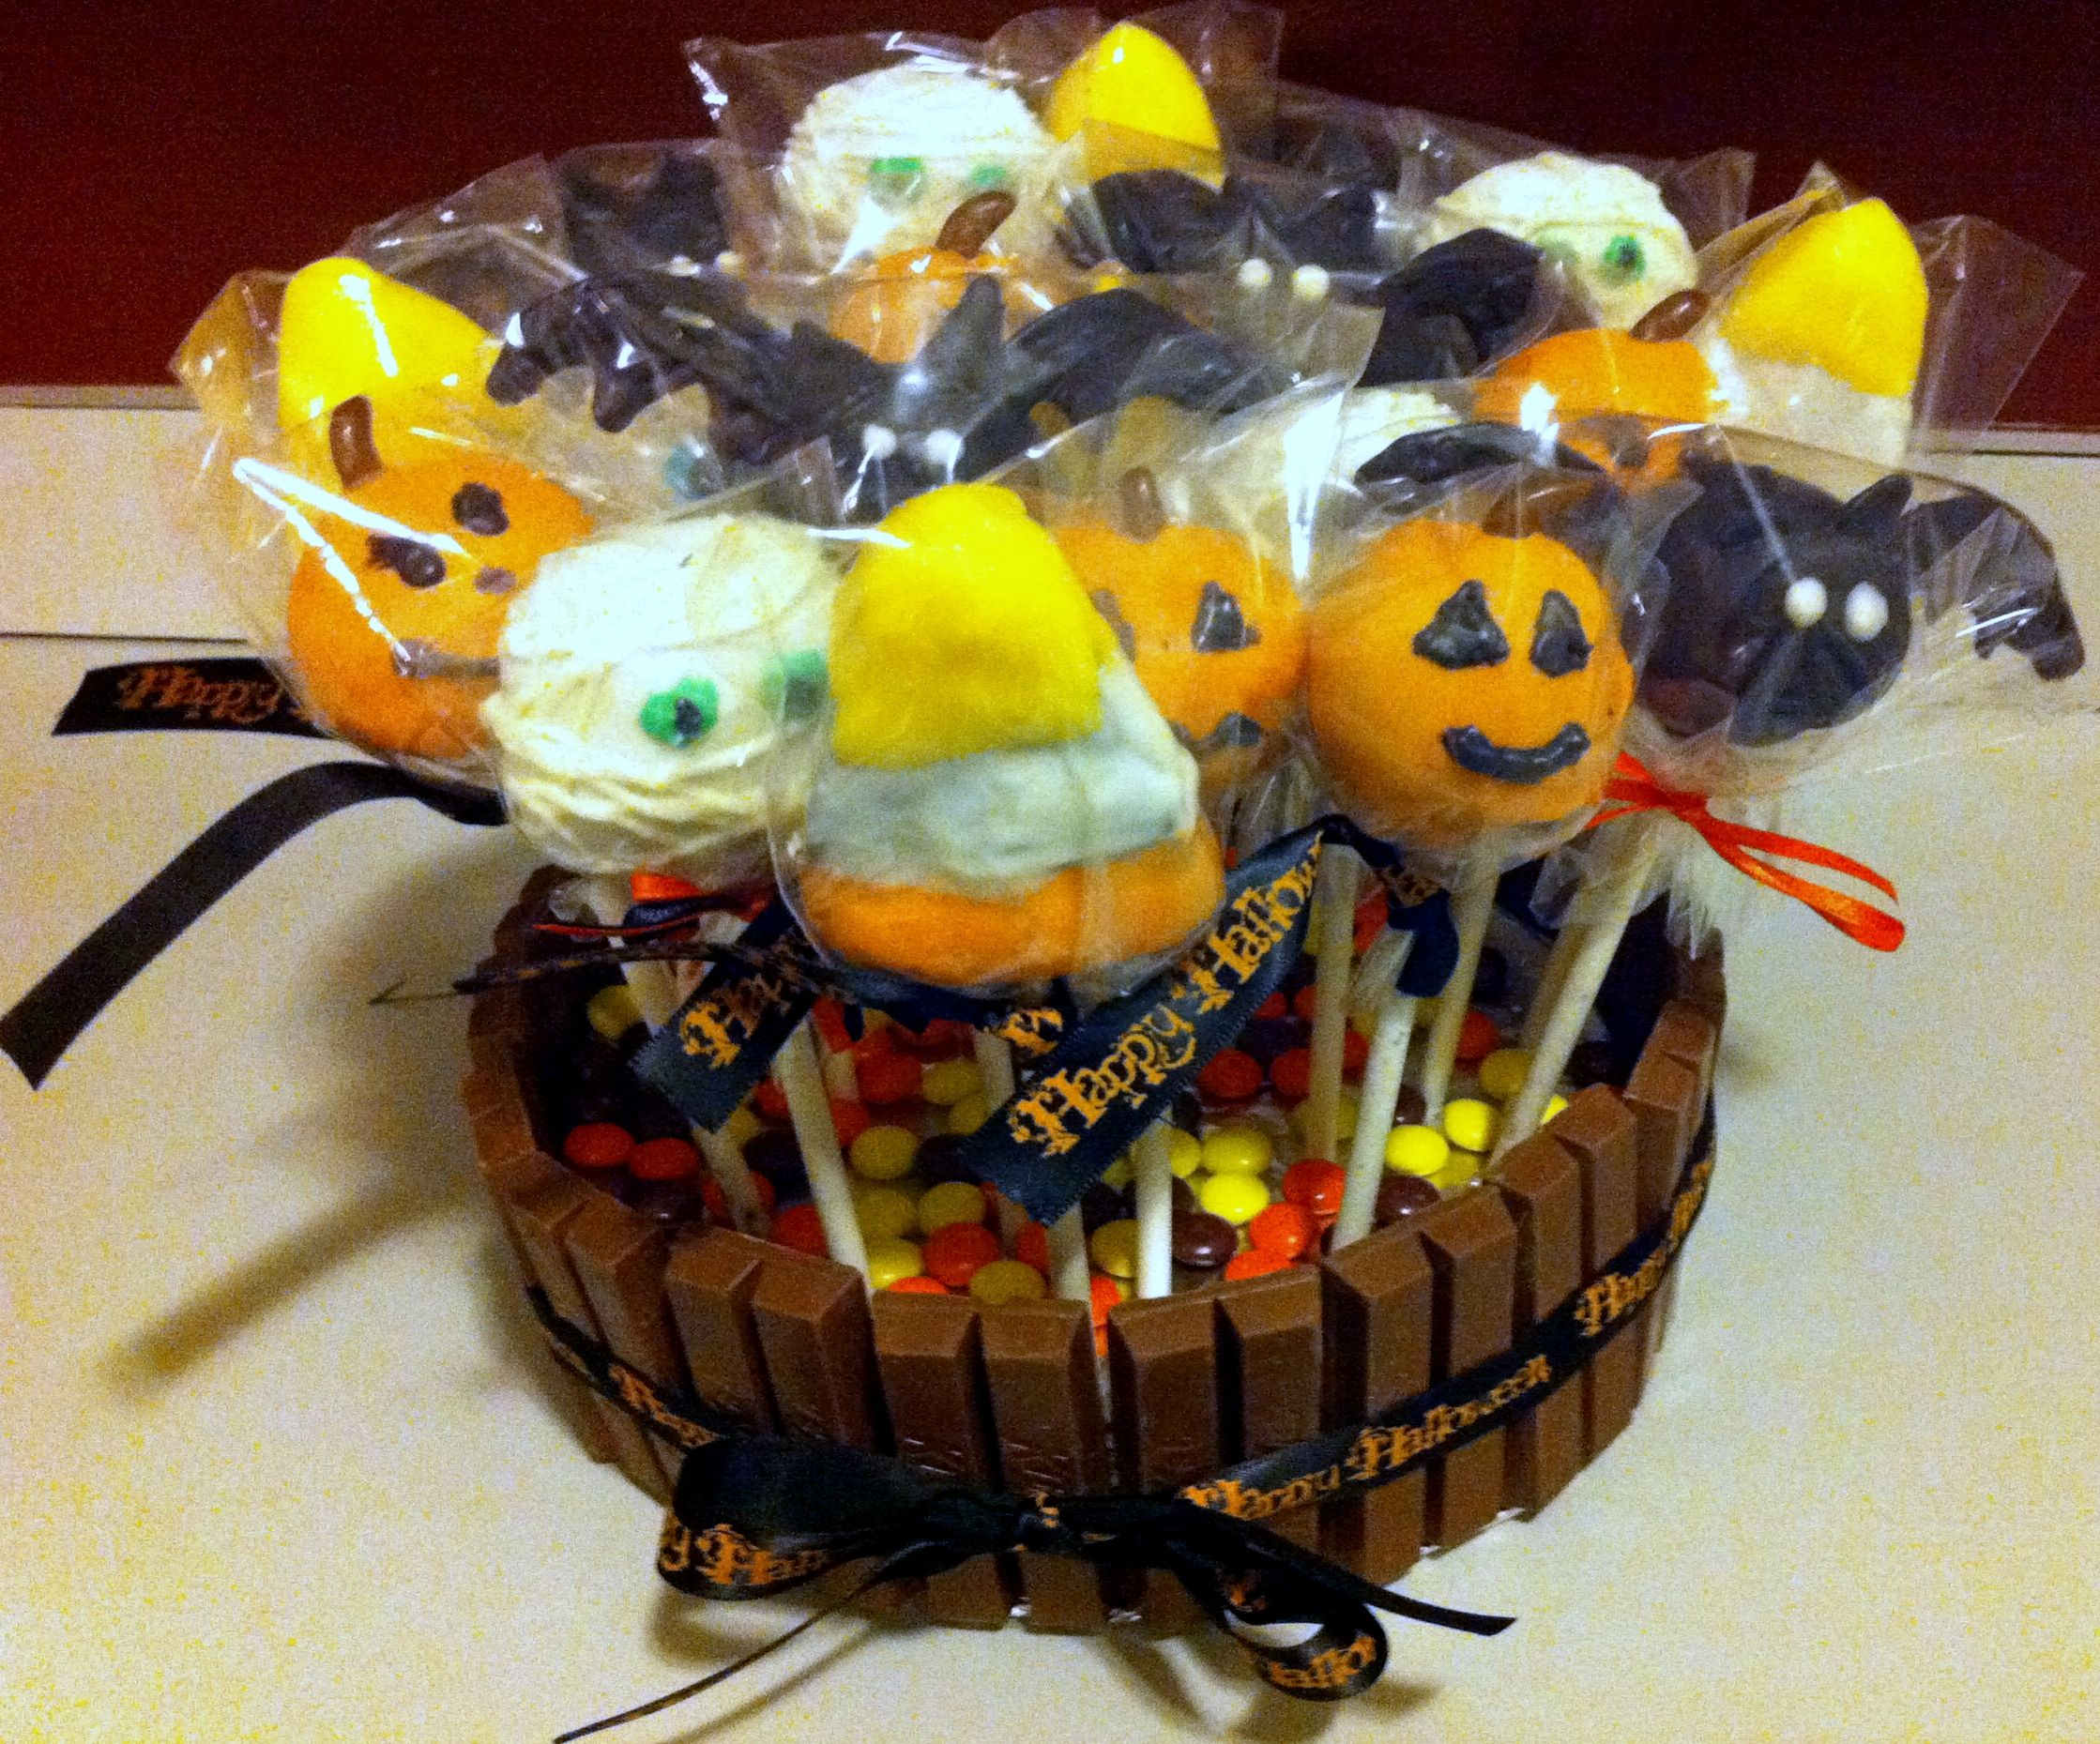 Halloween Cake Decorating Ideas Pinterest : Halloween cake pops! cake decorating Pinterest